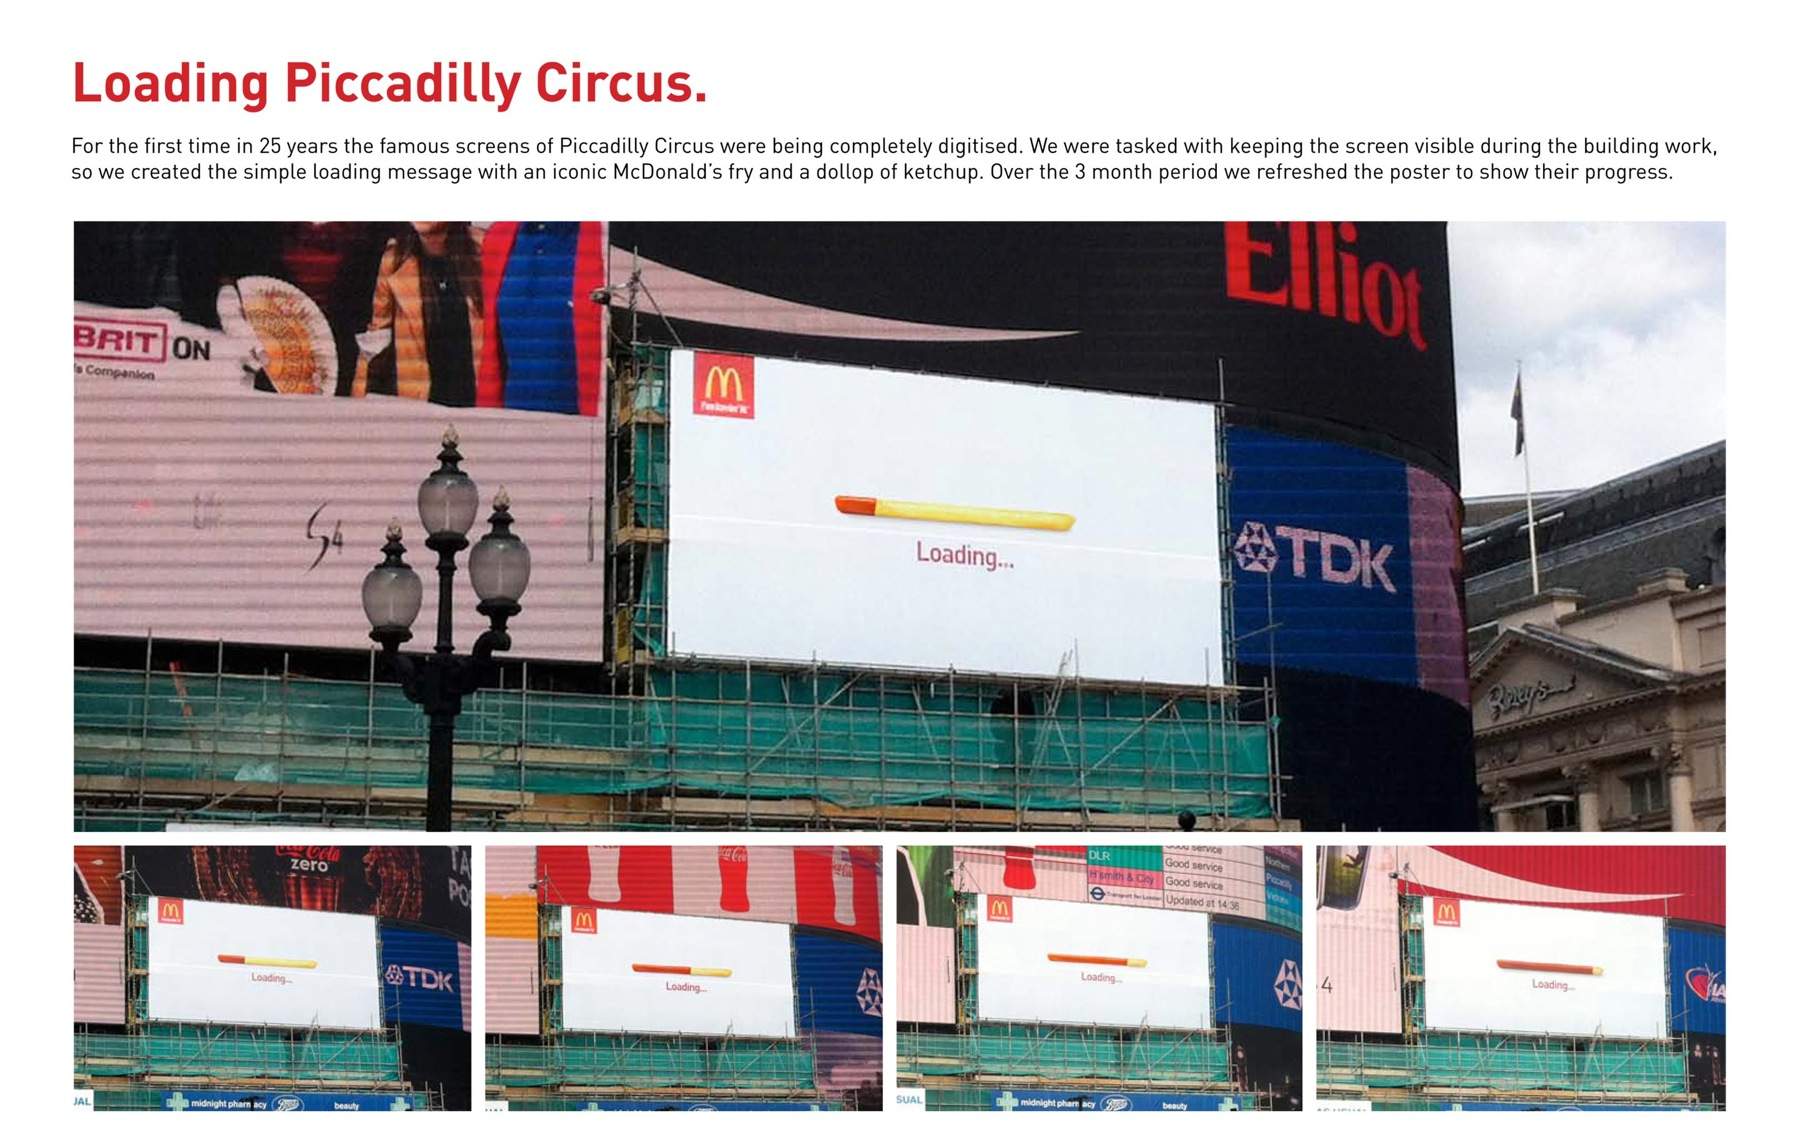 outdoor-print-mcdonalds-loading-piccadilly-circus